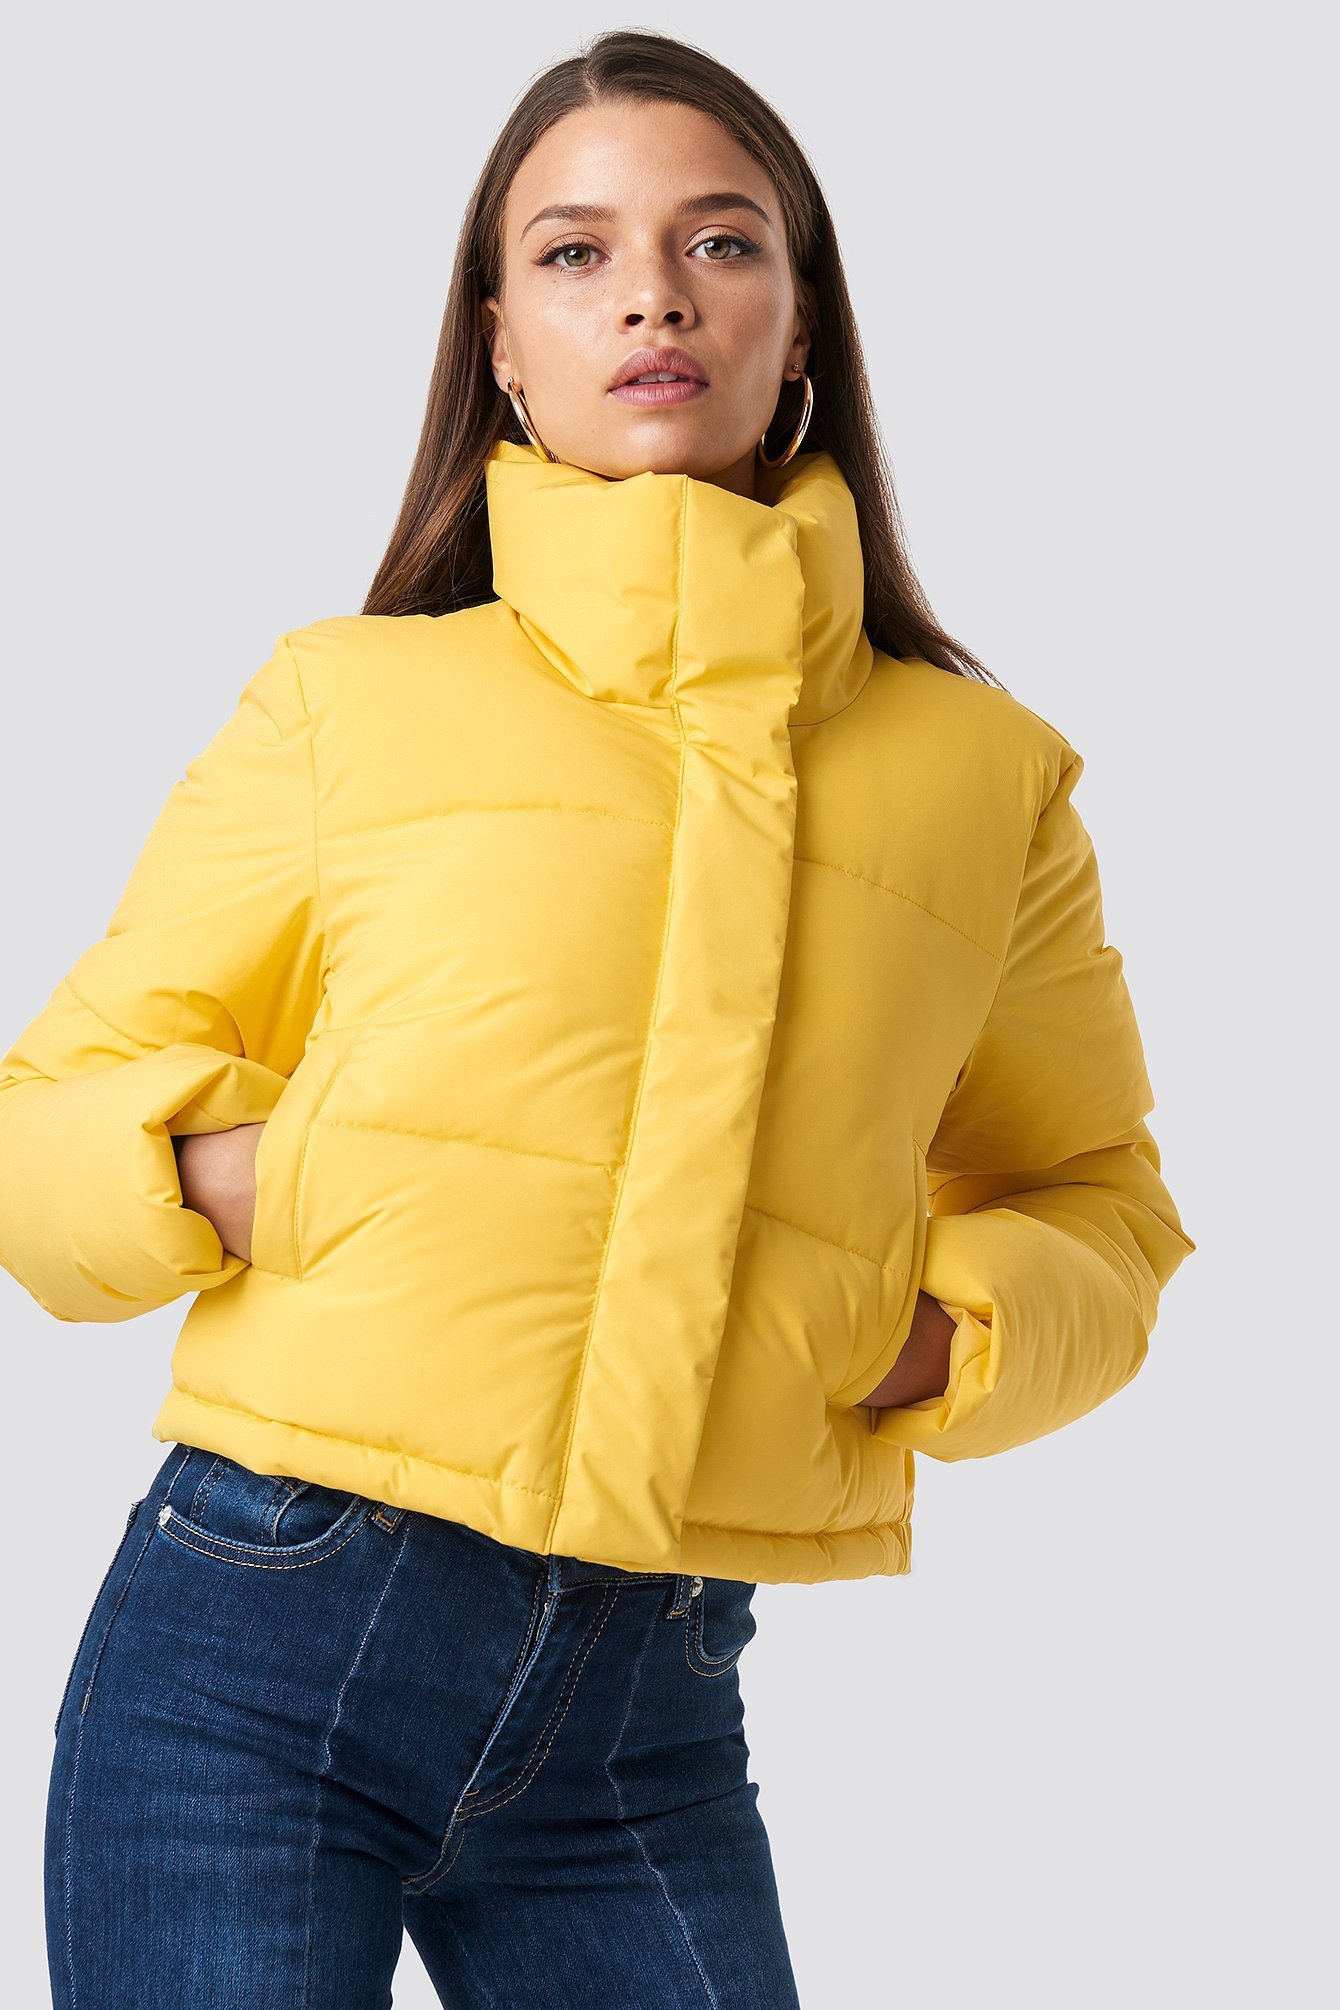 hannalicious x na-kd -  Short Puffy Jacket - Yellow